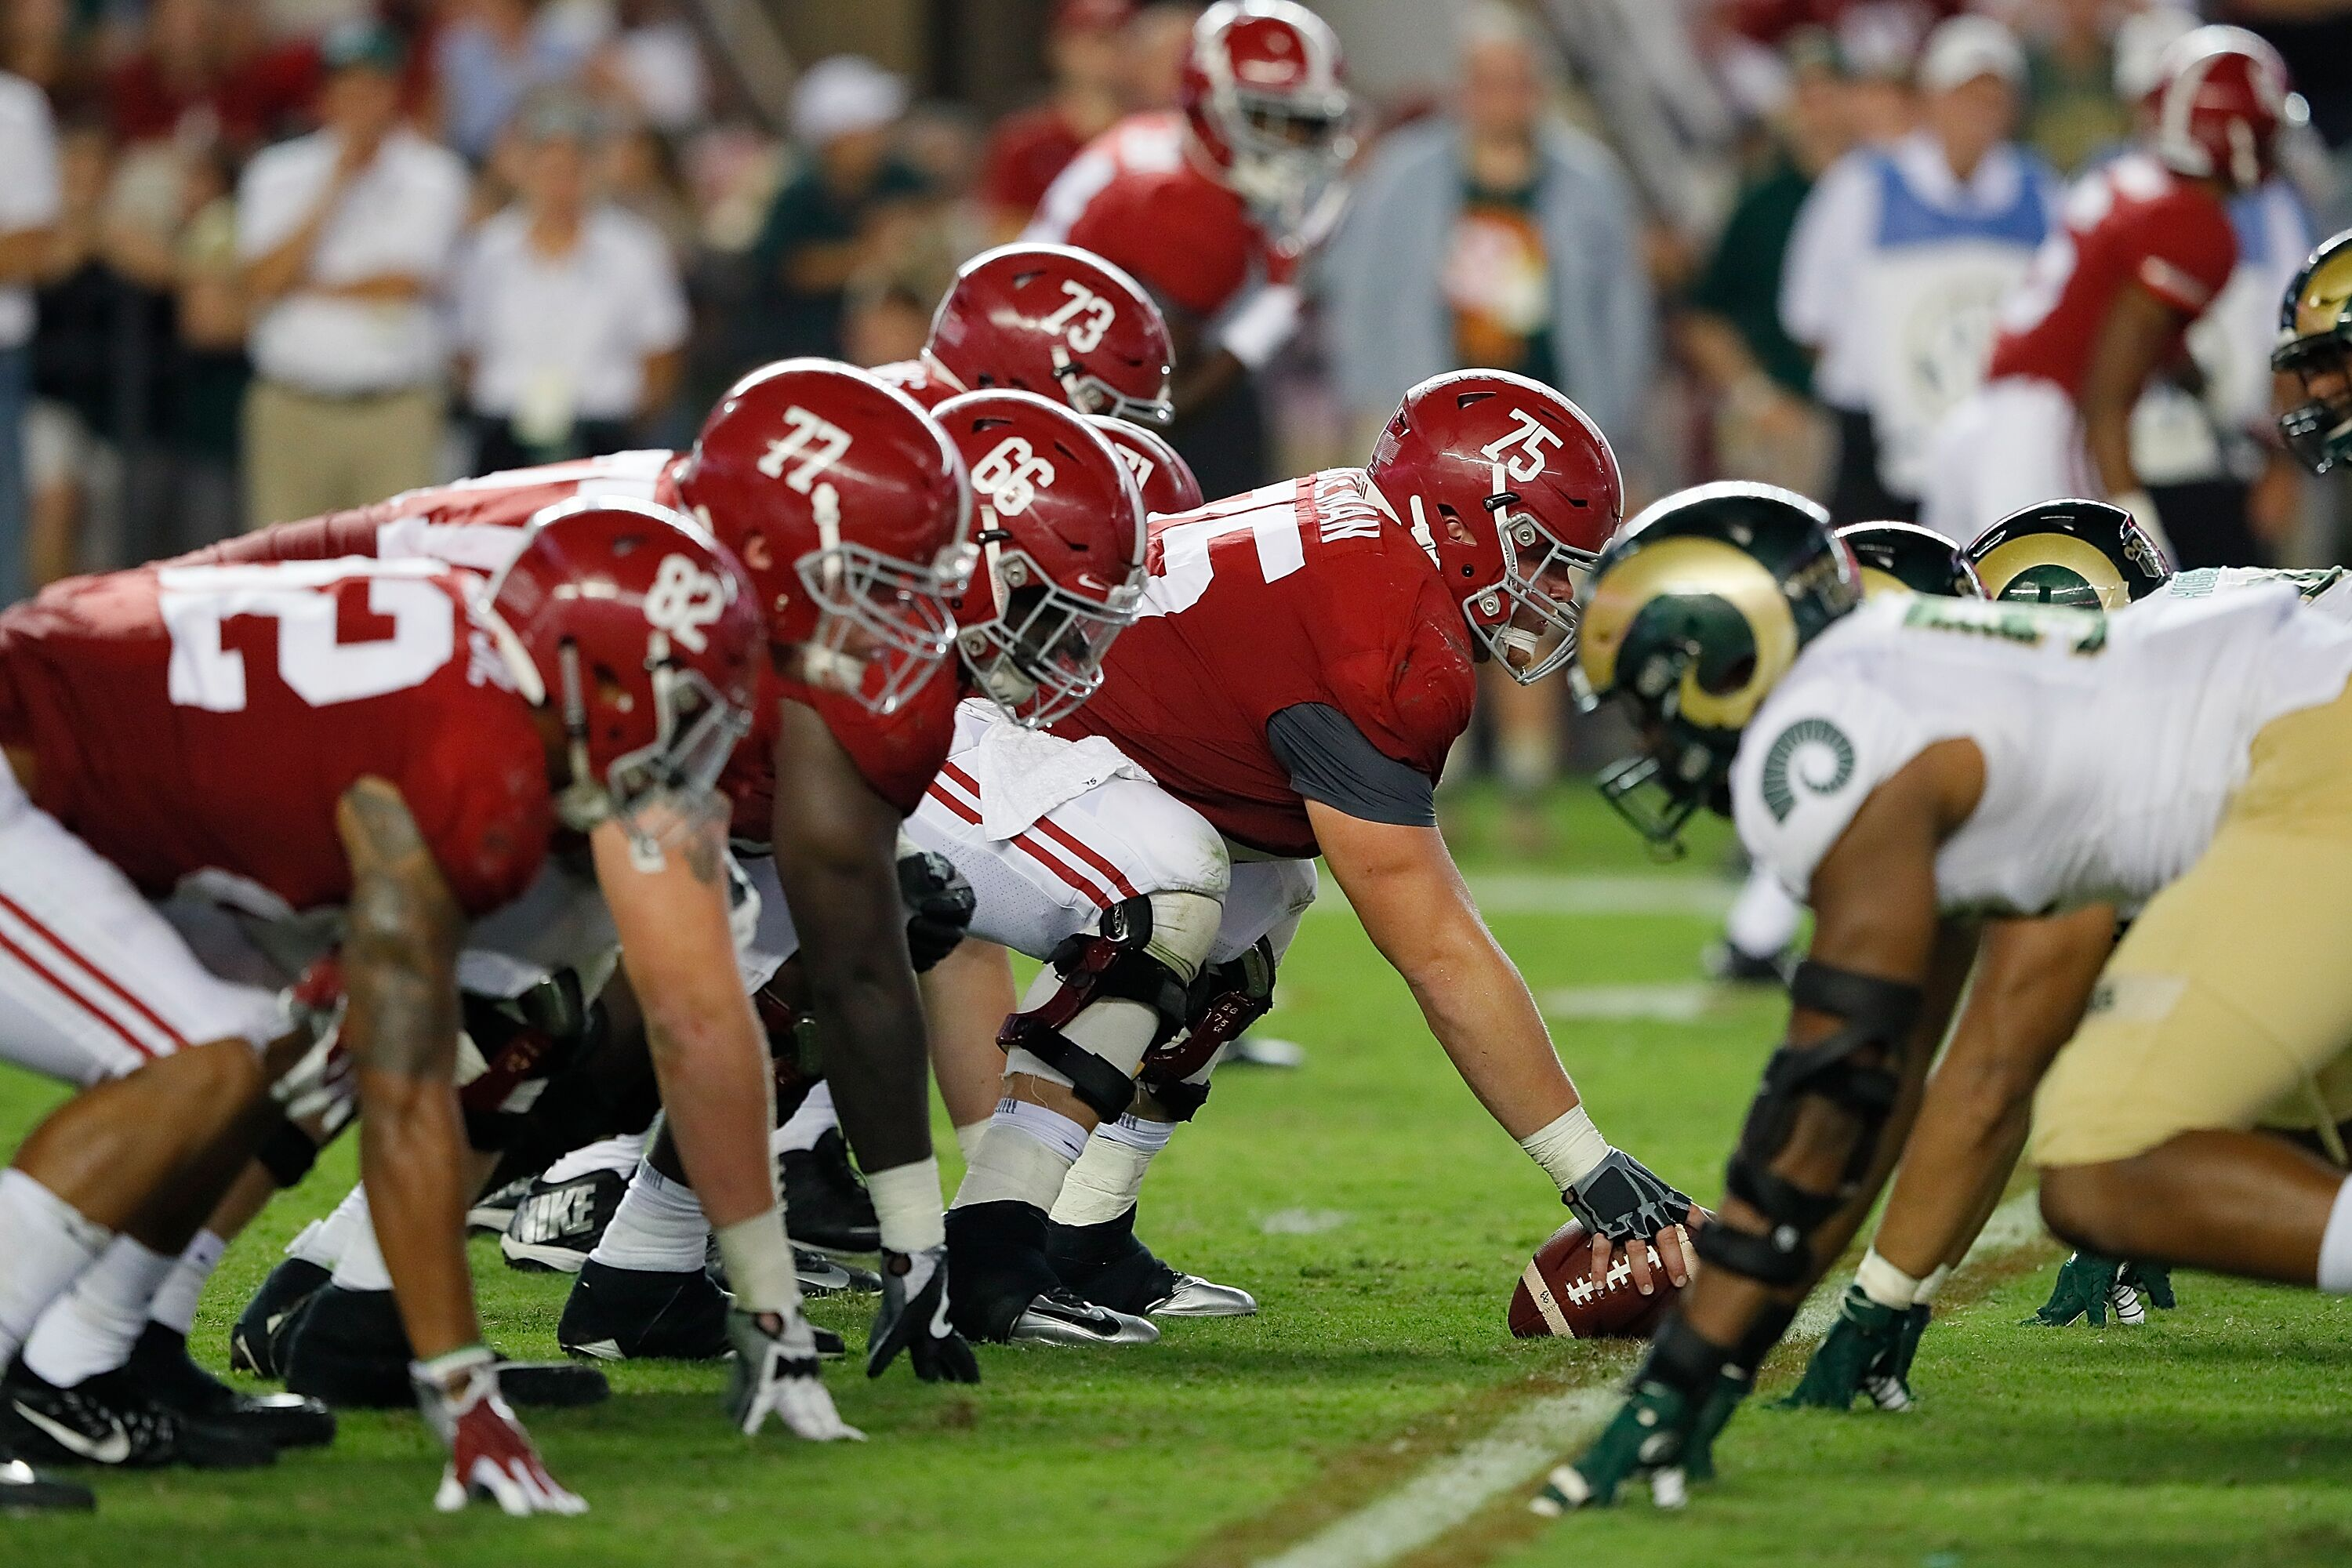 The Alabama Crimson Tide and Clemson Tigers have both been opened as heavy betting favorites at sportsbooks on the College Football Playoff semifinal odds